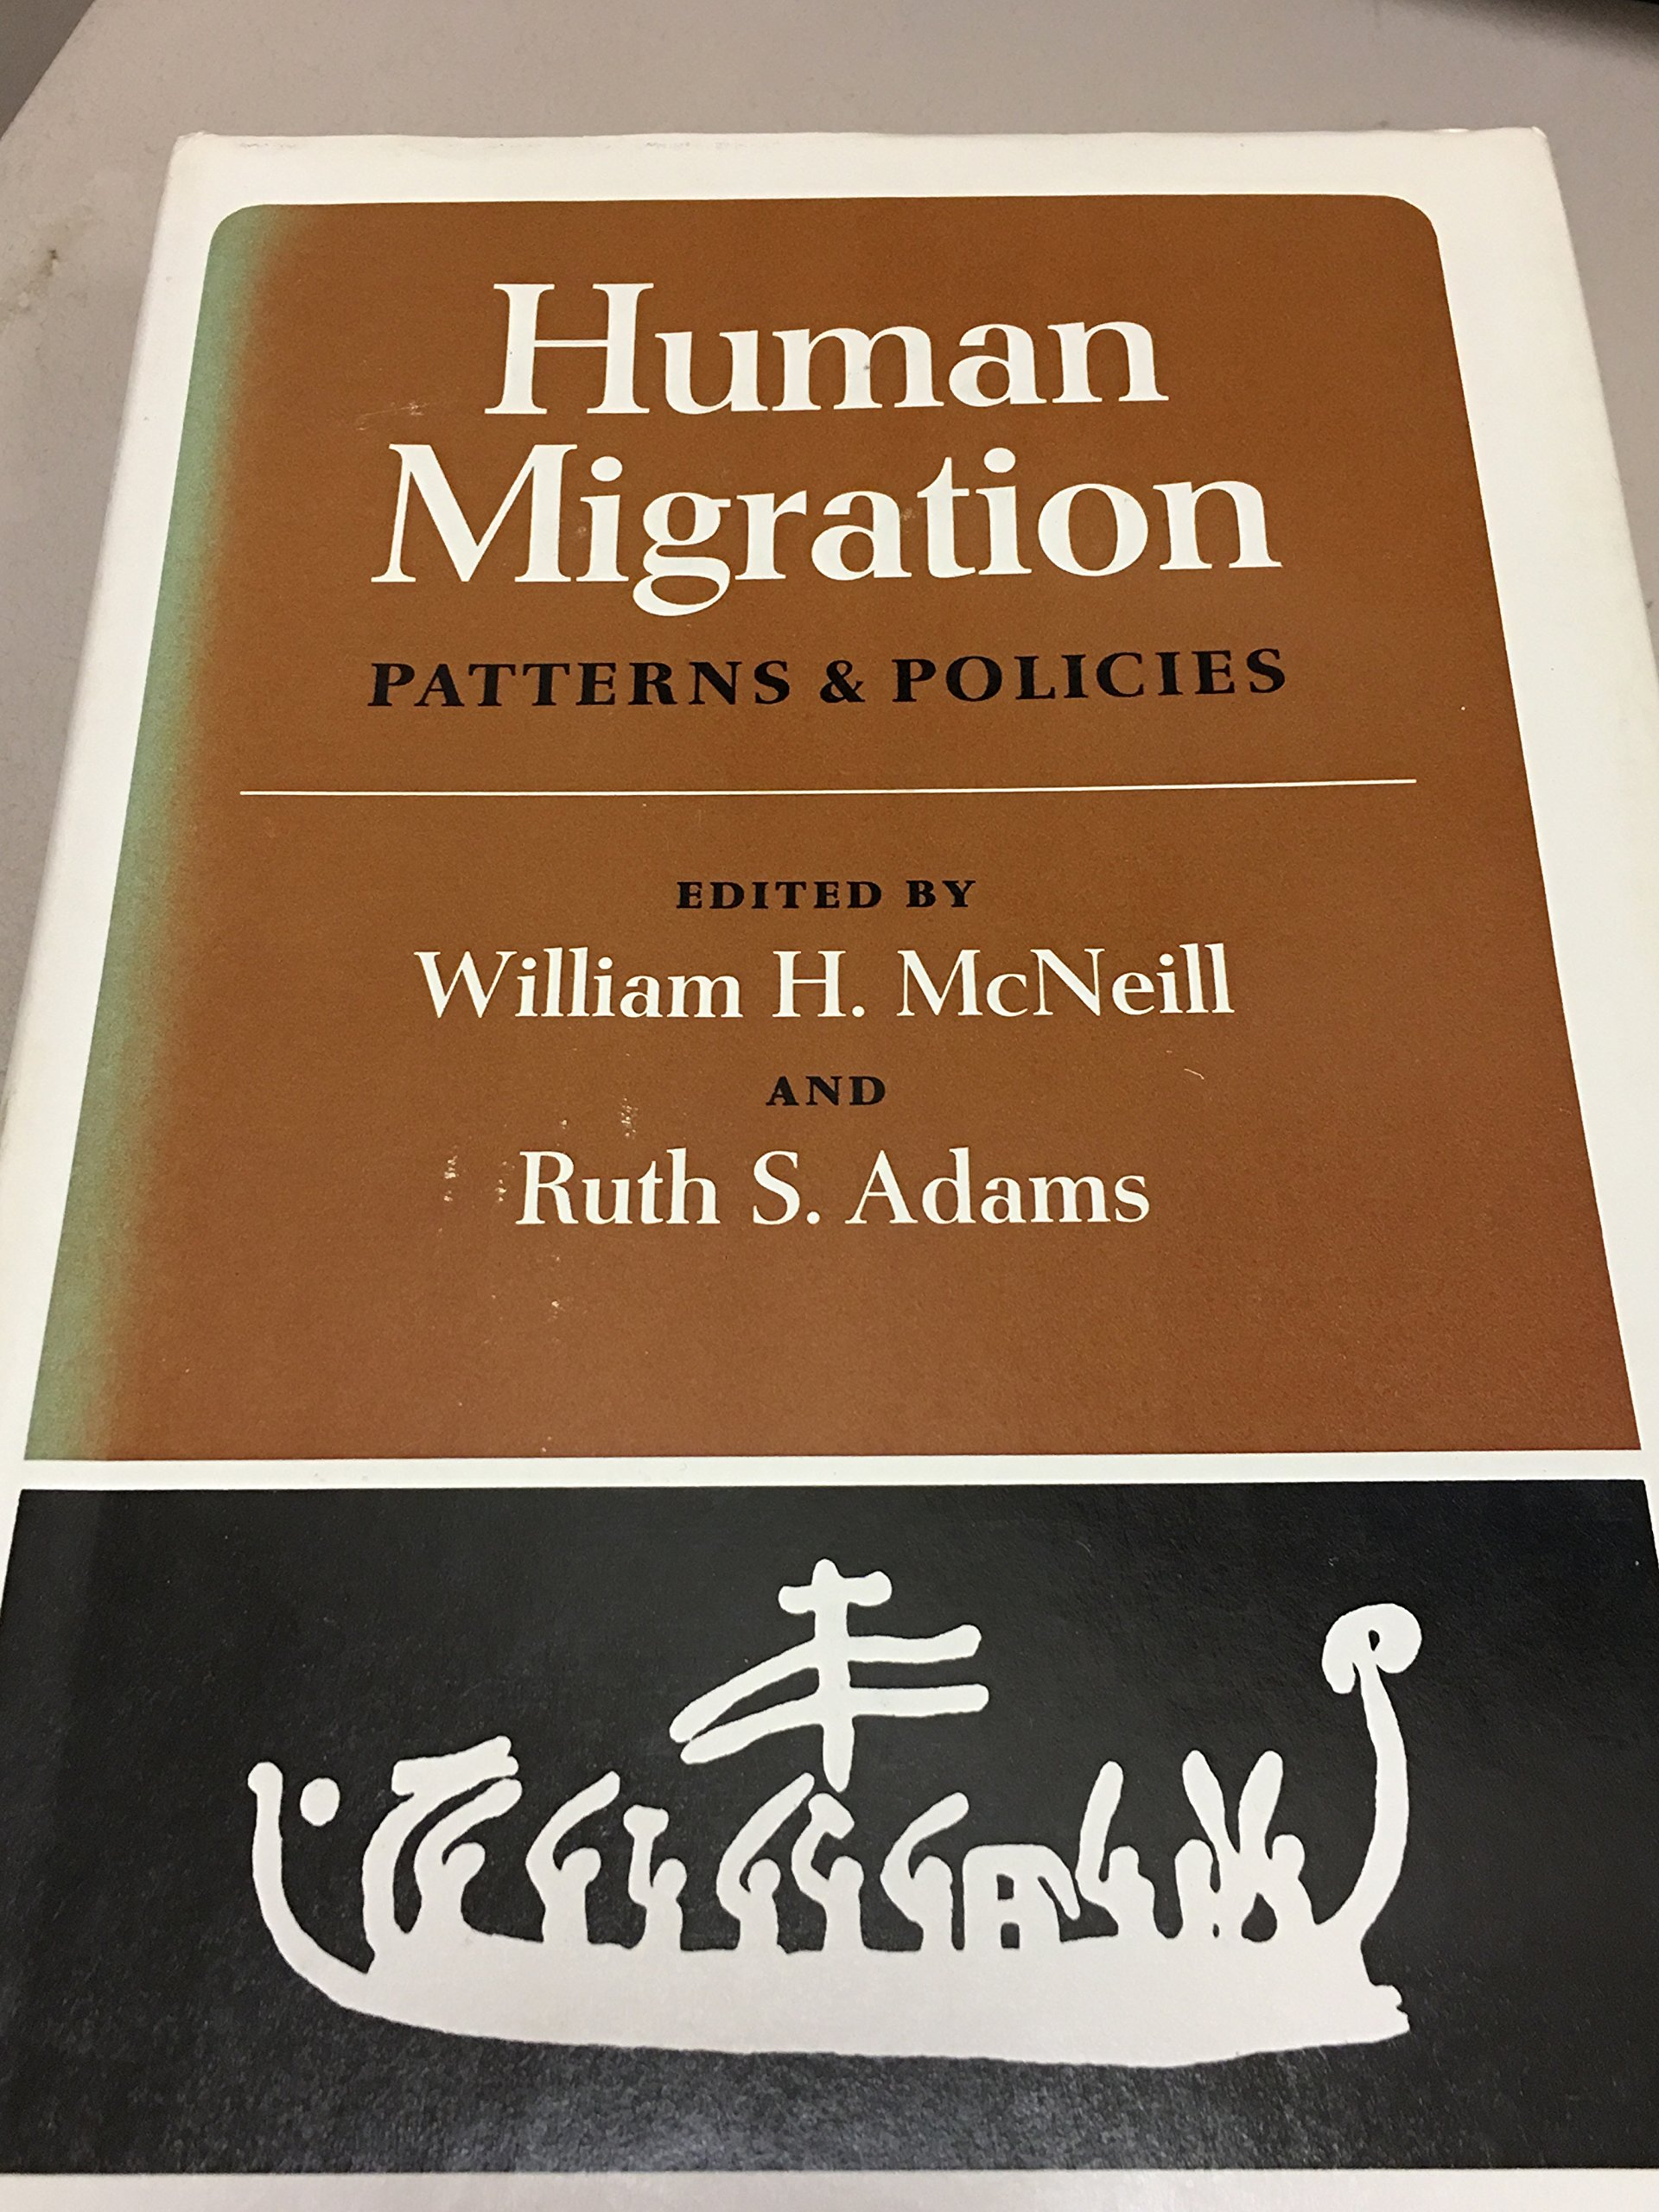 Human migration patterns and policies william h mcneill ruth j human migration patterns and policies william h mcneill ruth j adams 9780253328755 amazon books fandeluxe Choice Image